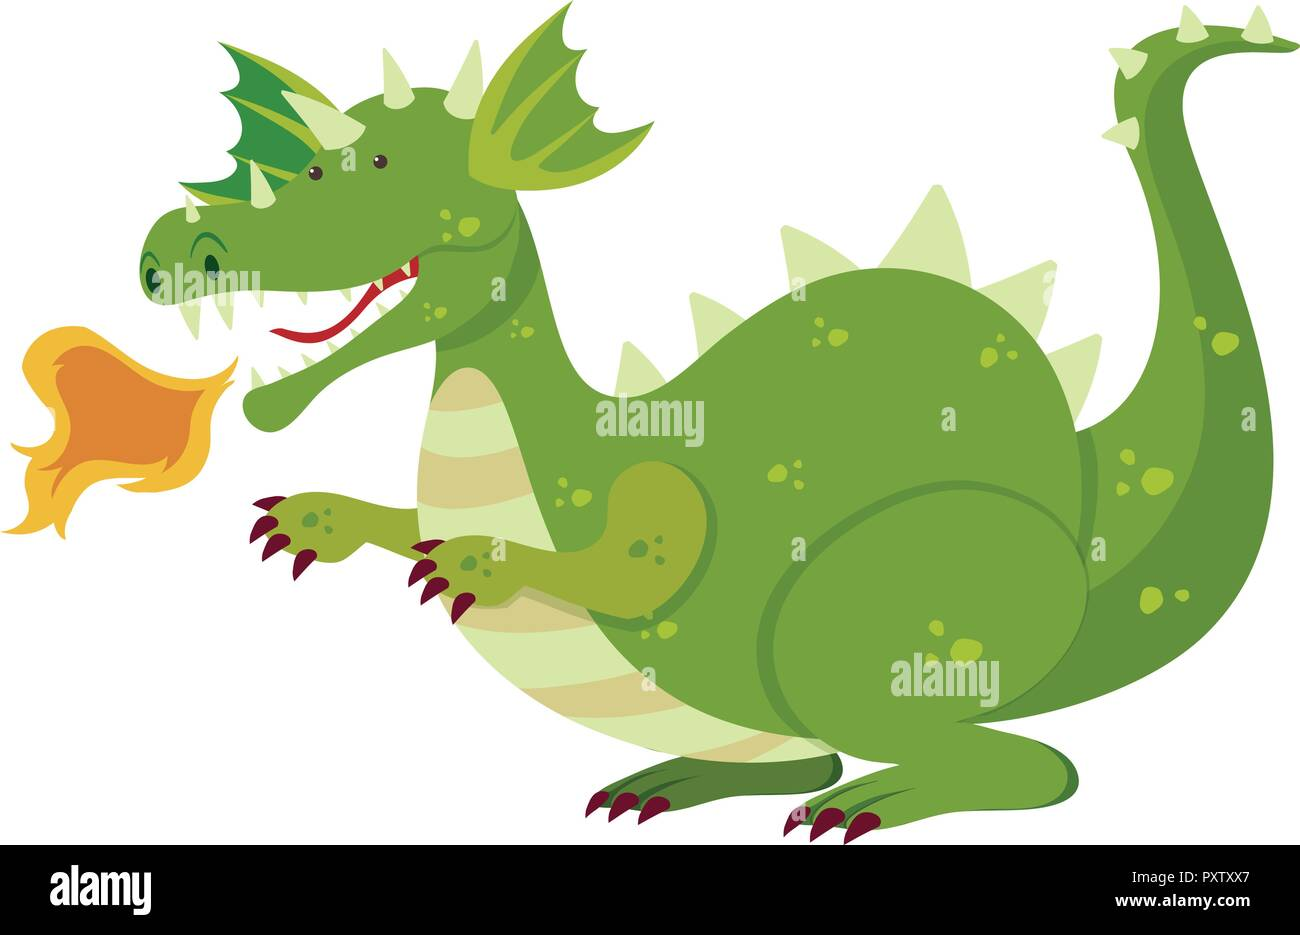 Green dragon blowing fire illustration - Stock Vector